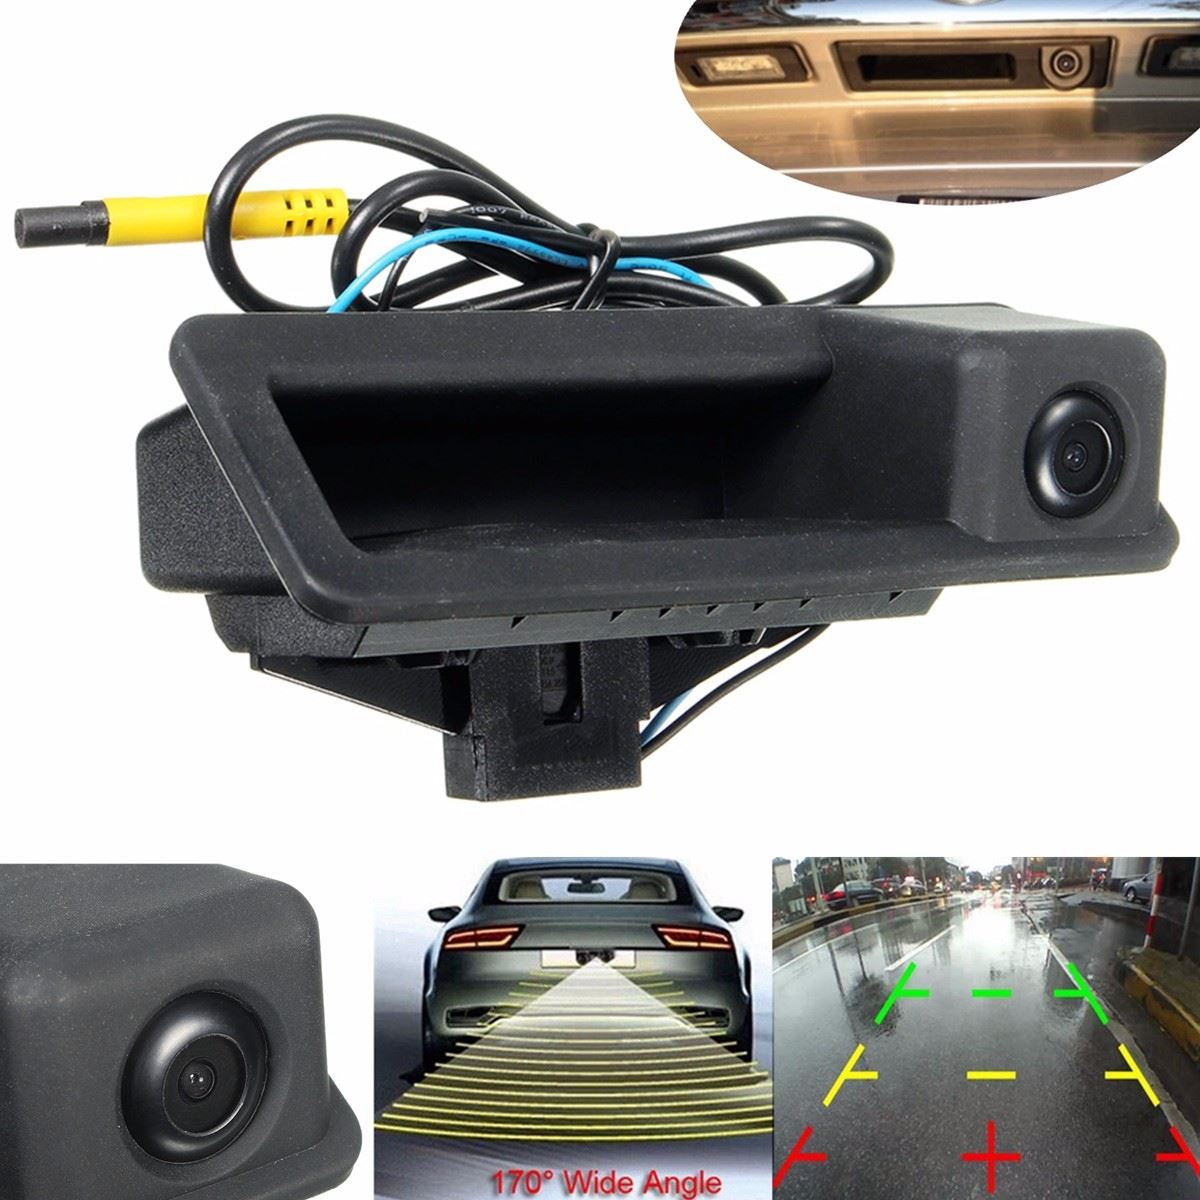 HD CCD Backup Trunk Handle Switch Rear View Reversing Camera For BMW 3/5/X5 SeriesE90 E60 E70 Model Cars Waterproof 170 Degree